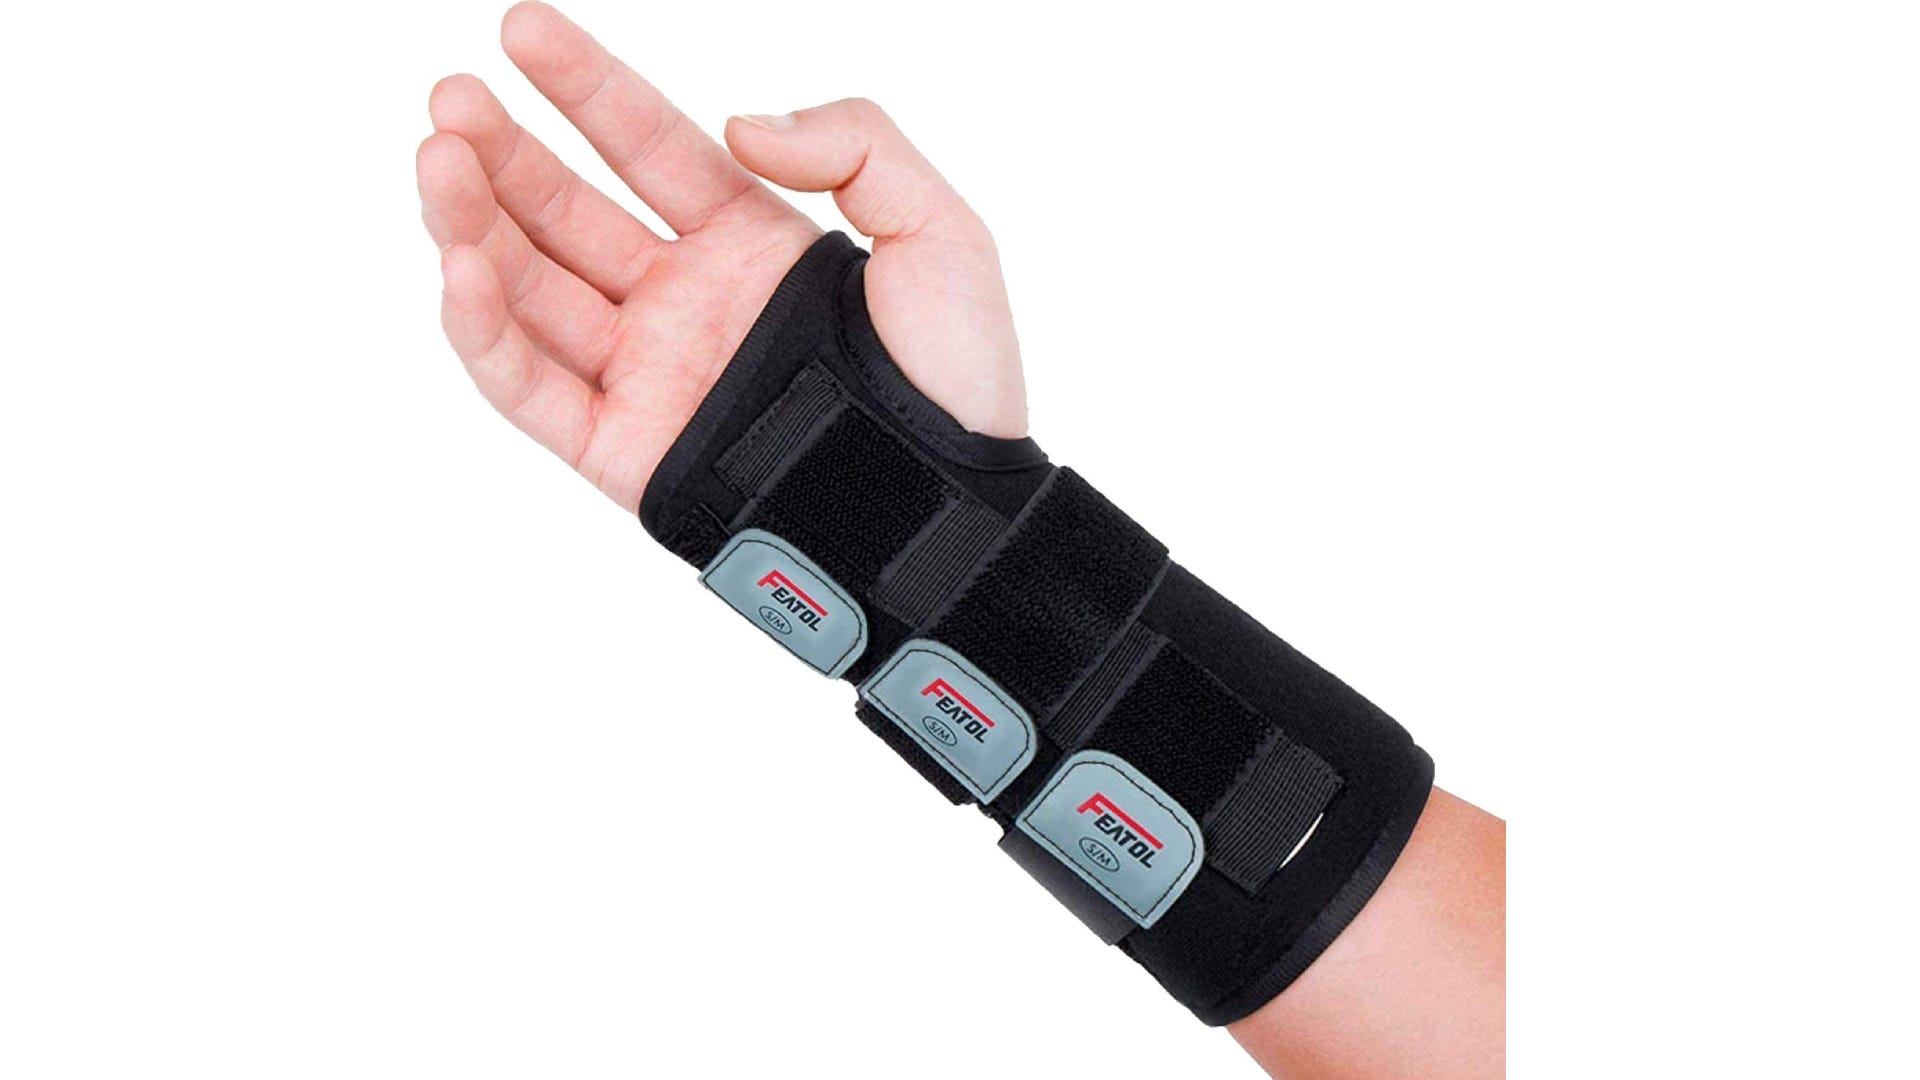 A hand wearing a black wrist brace that wraps around the thumb and extends town the forearm.